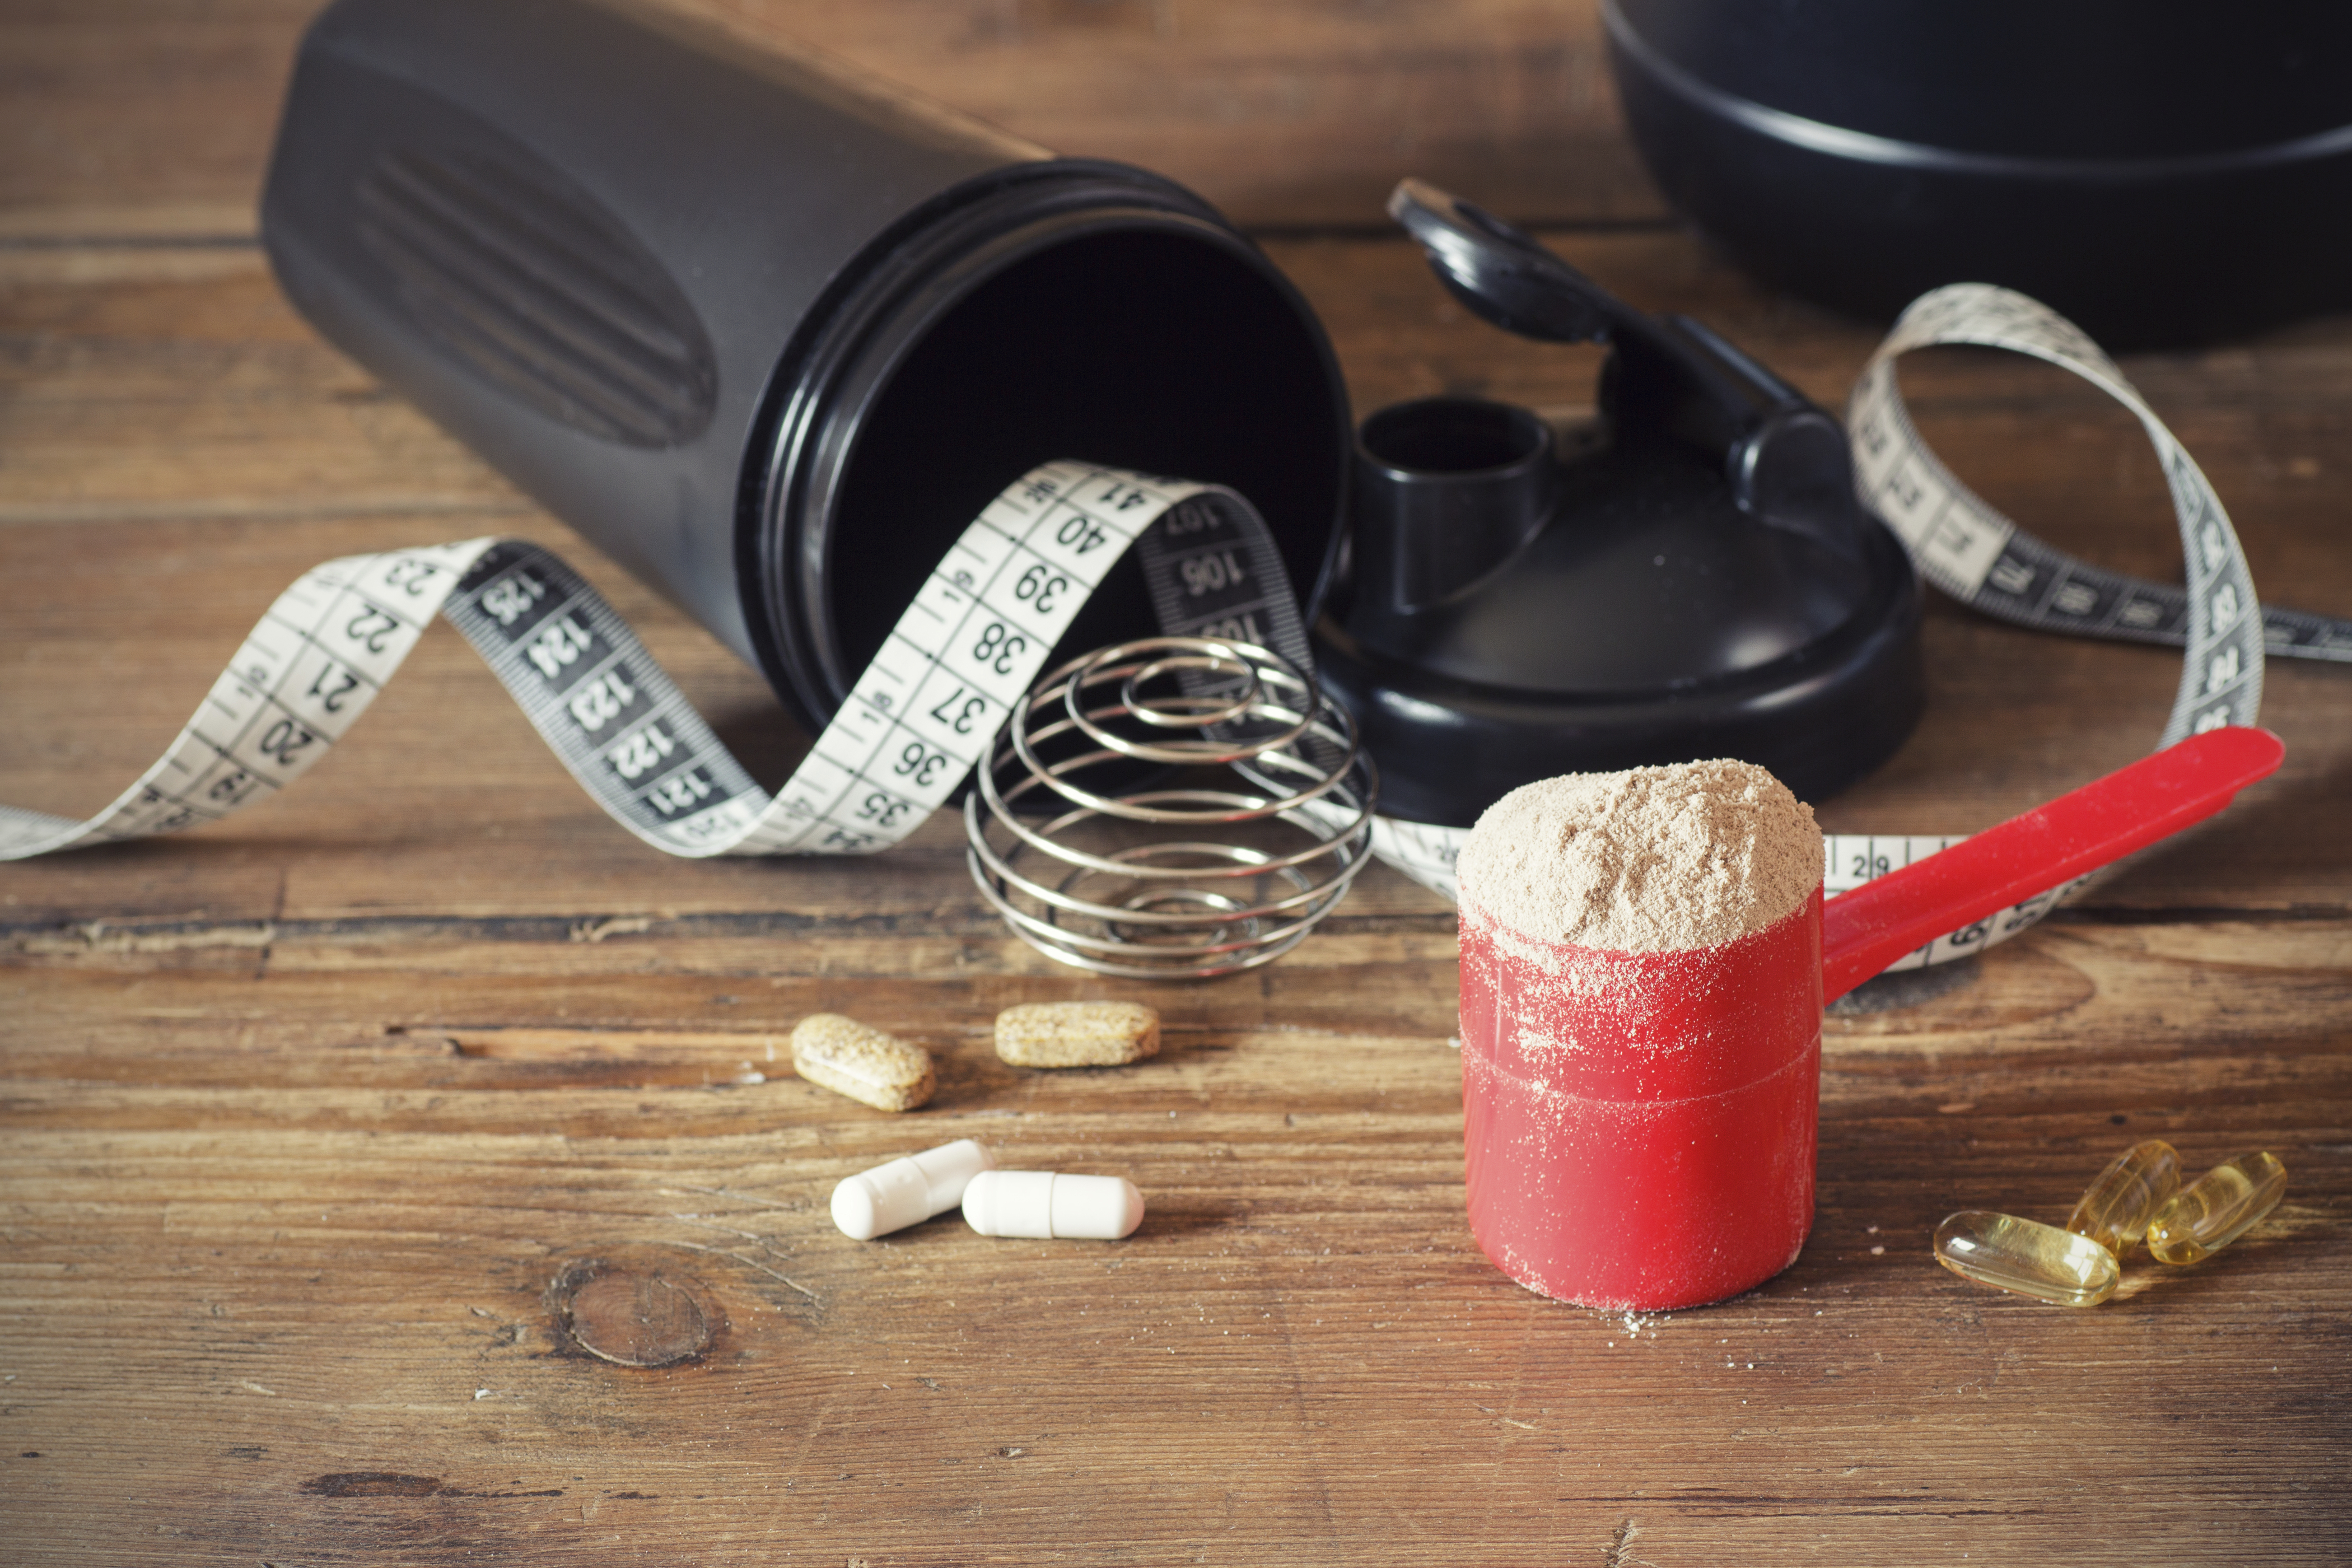 Creatine dietary supplement for bodybuilding is too easy for